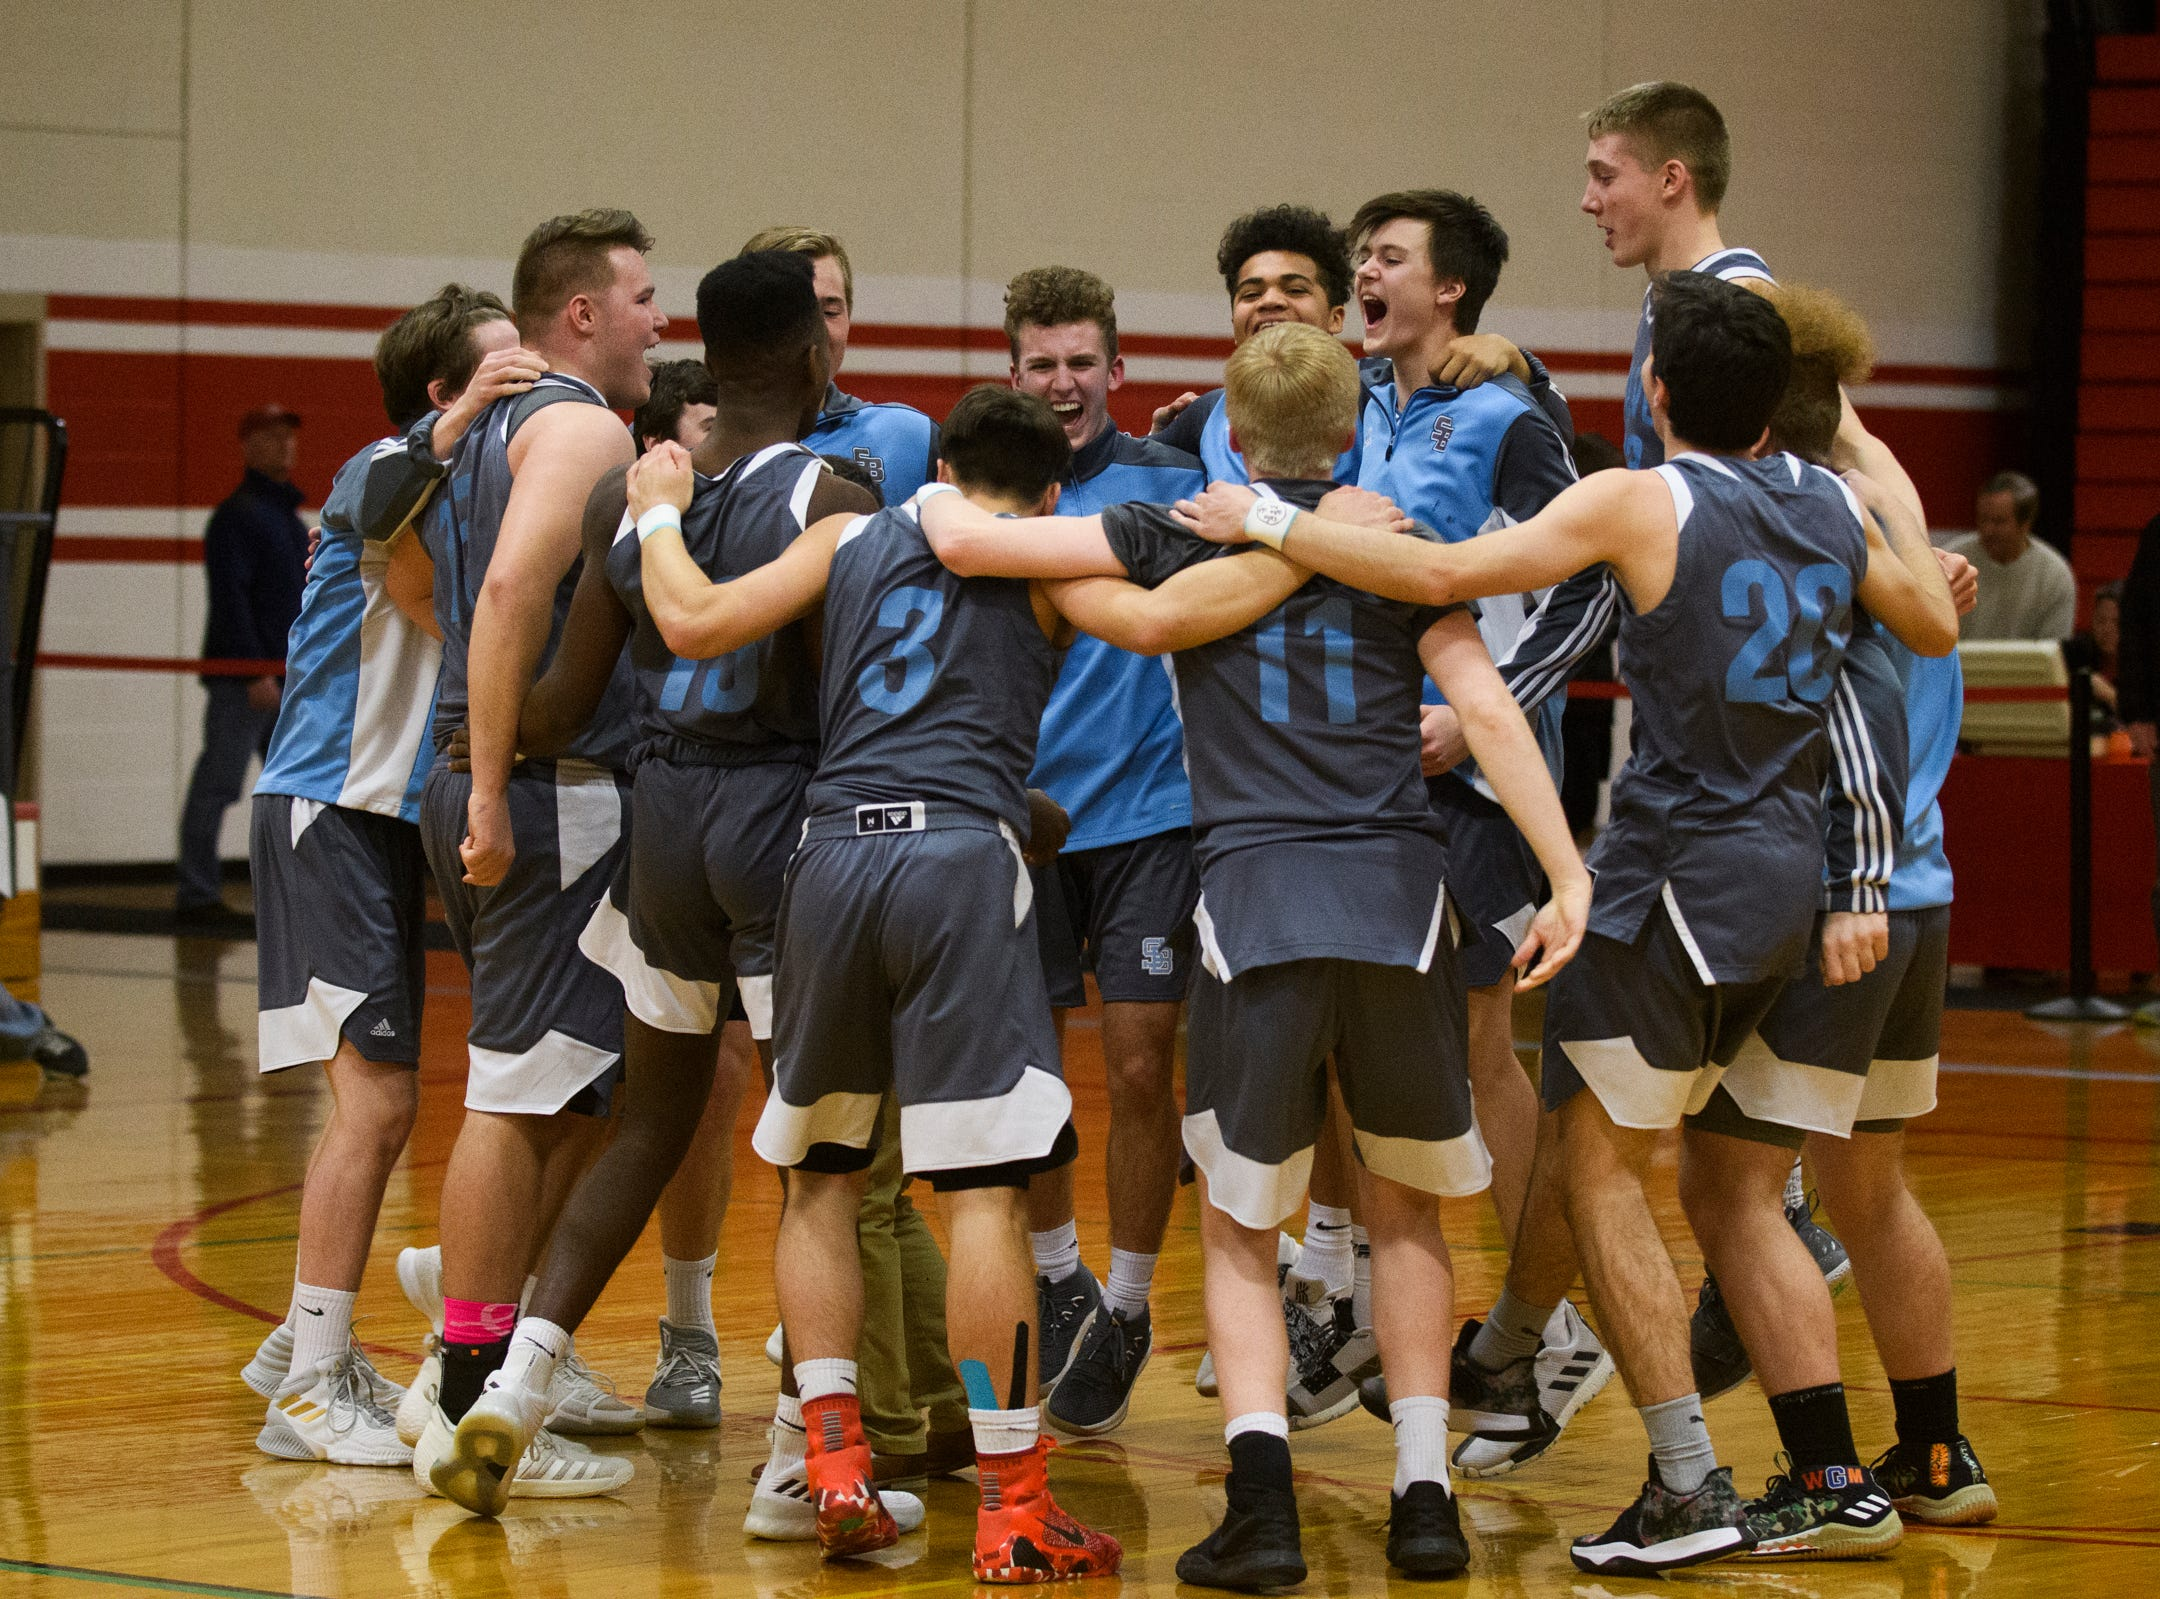 South Burlington huddles together during the boys basketball game between he South Burlington Wolves and the Champlain Valley Union Redhawks at CVU High School on Tuesday night March 5, 2019 in Hinesburg, Vermont.